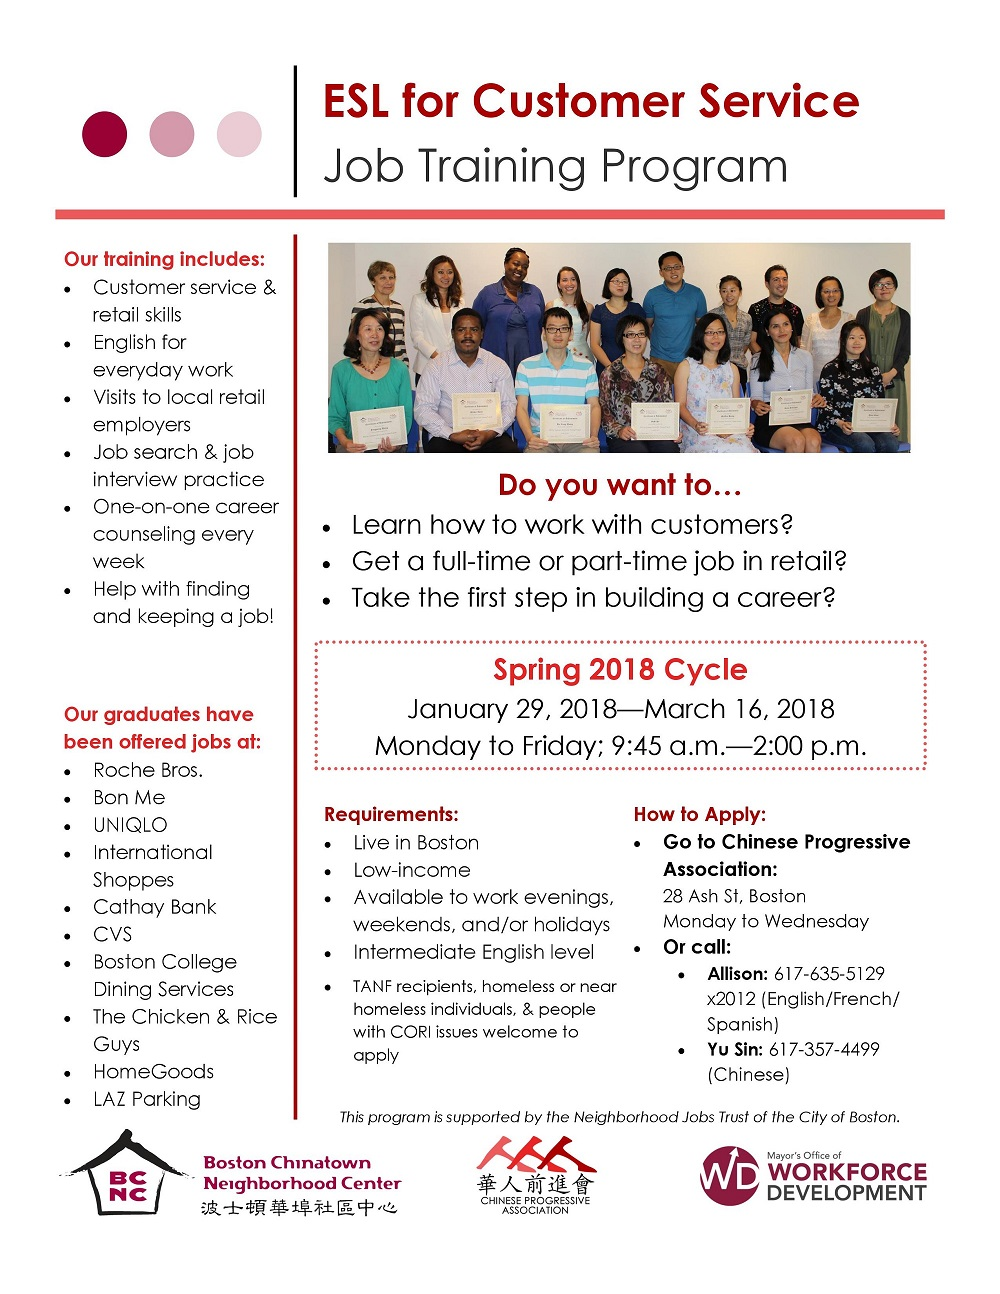 BCNC: ESL for Customer Service Job Training Program